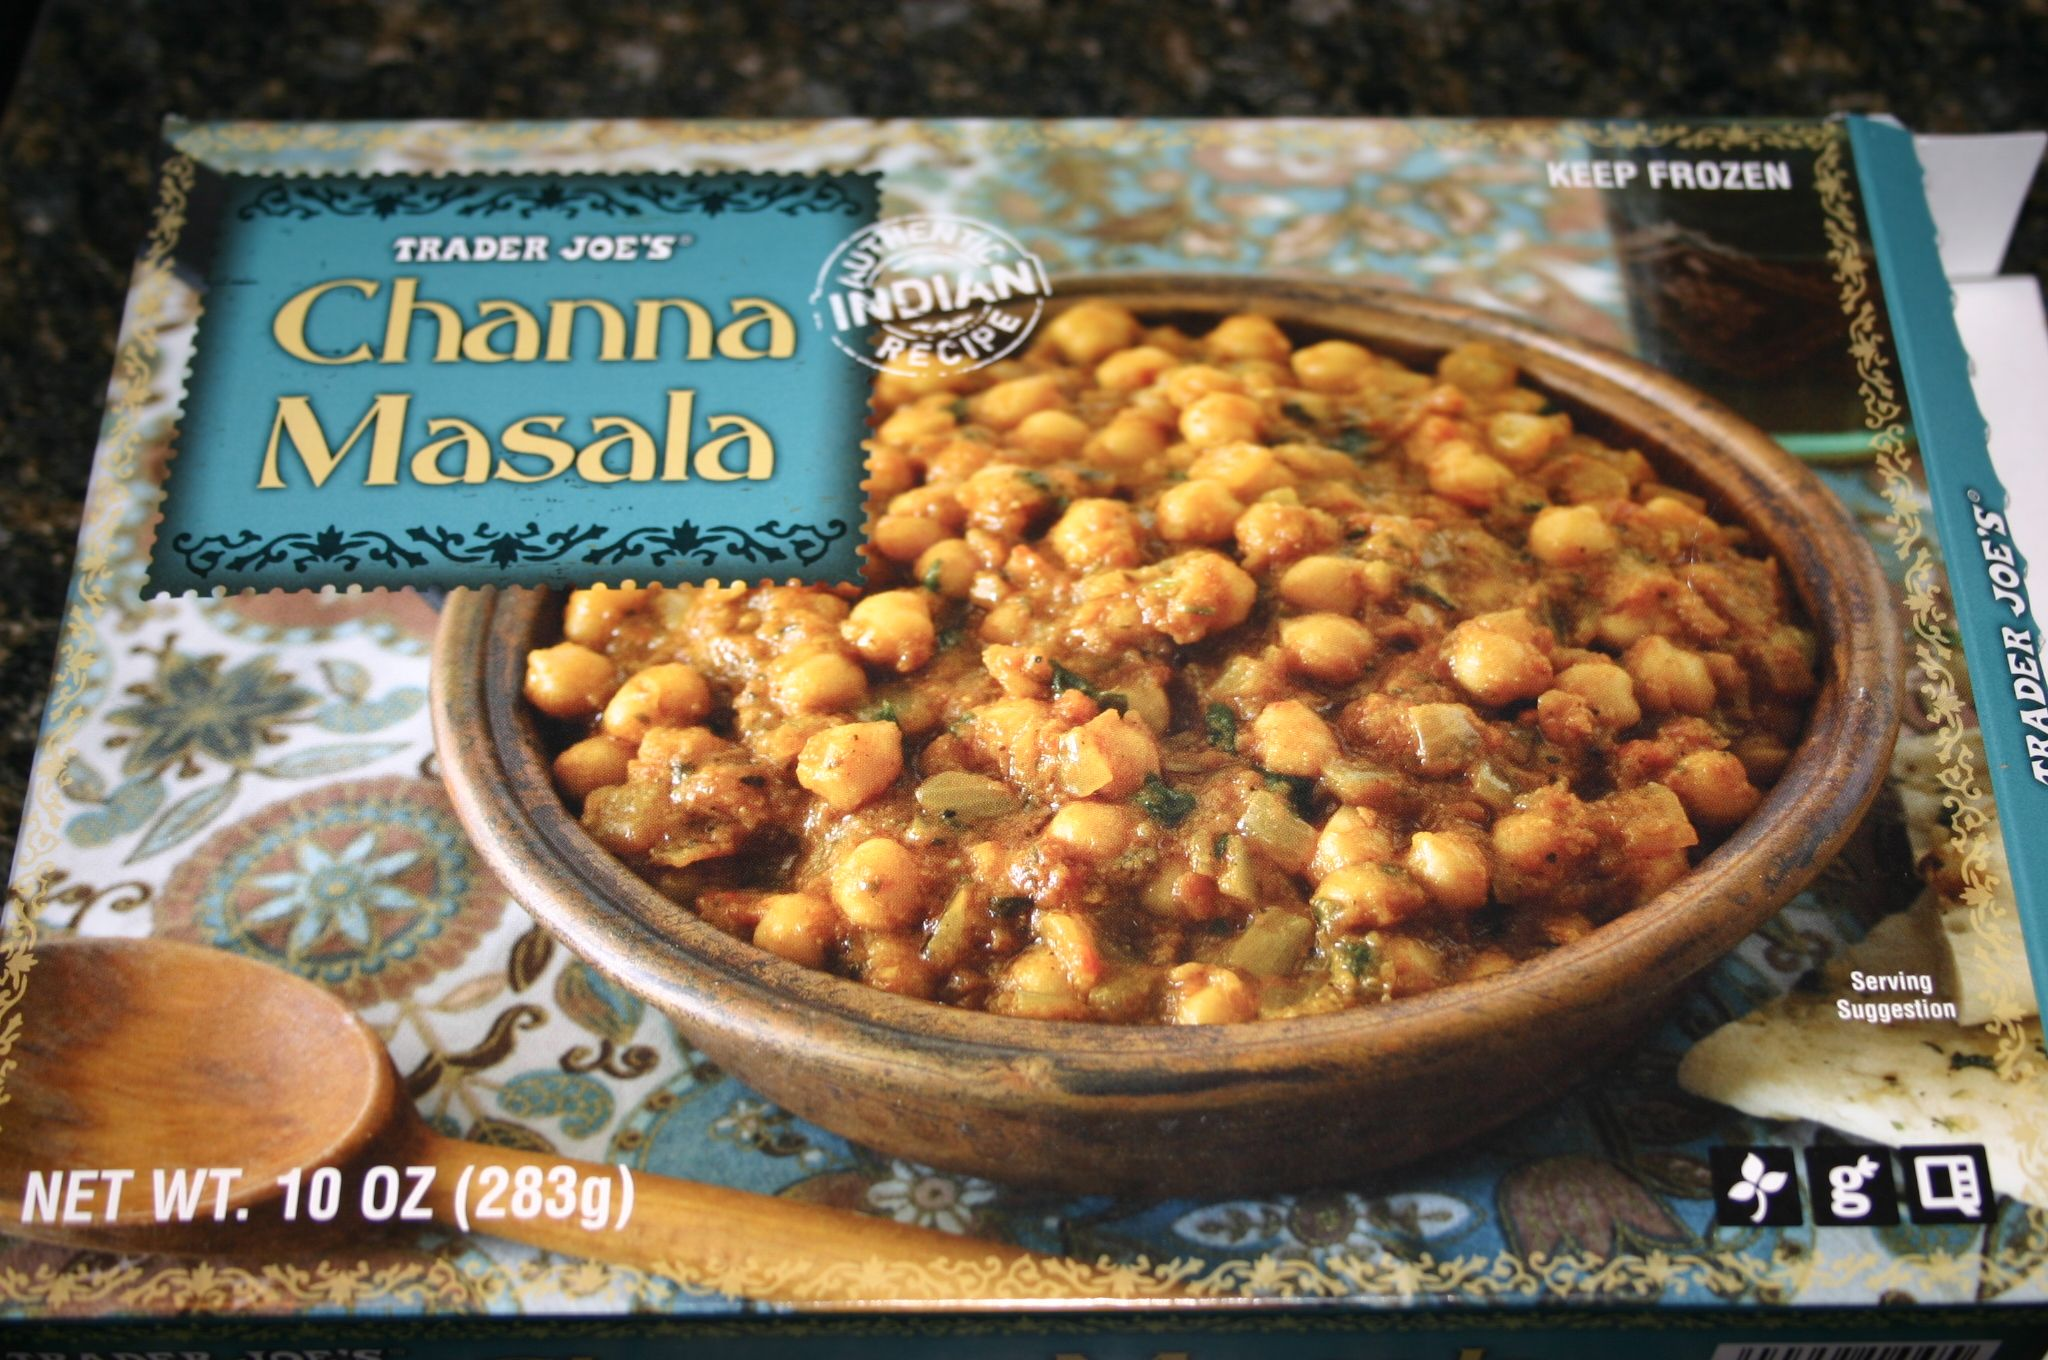 TJs Channa Masala - much better than other frozen versions I've tried. Yum.